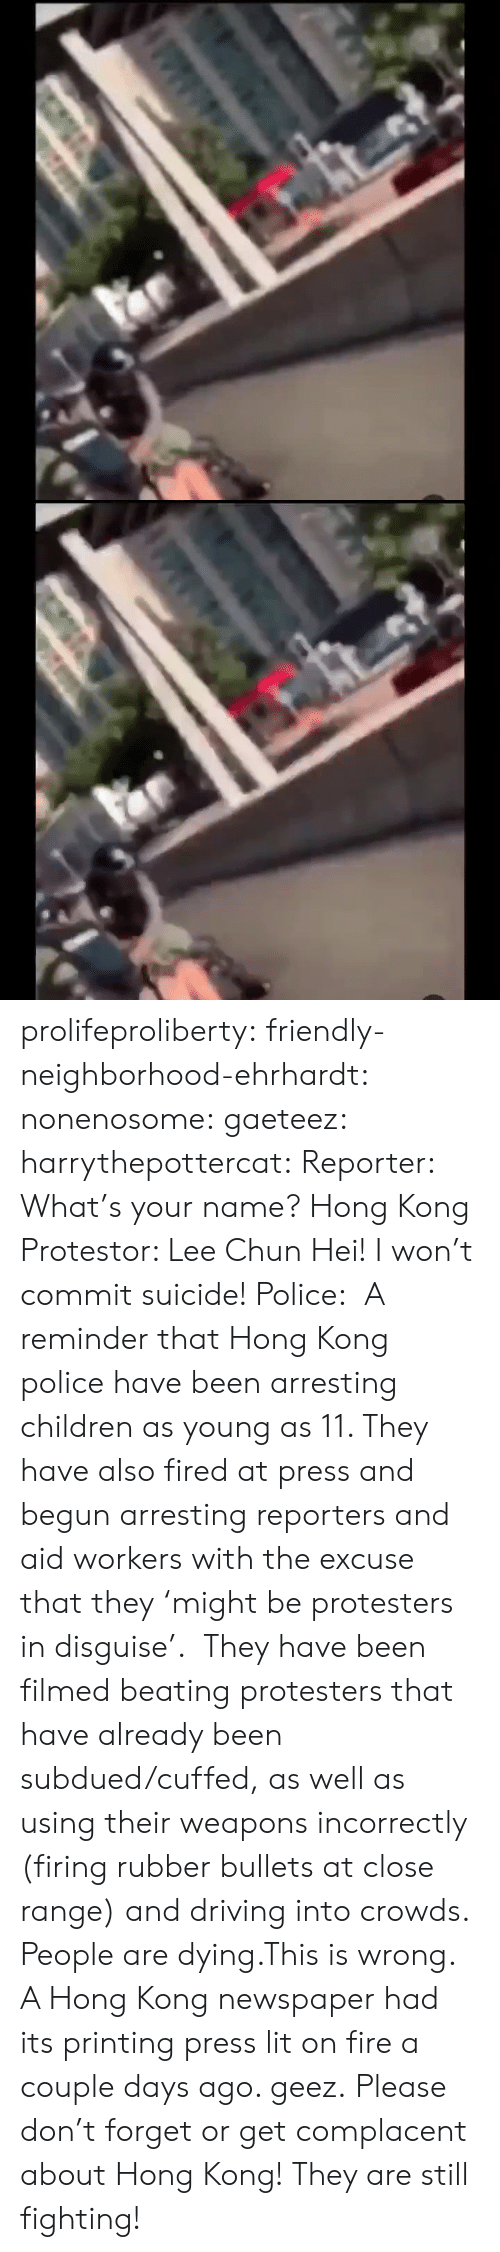 newspaper: के.  ॥ल prolifeproliberty:  friendly-neighborhood-ehrhardt:  nonenosome:  gaeteez:   harrythepottercat:  Reporter: What's your name? Hong Kong Protestor: Lee Chun Hei! I won't commit suicide! Police:    A reminder that Hong Kong police have been arresting children as young as 11. They have also fired at press and begun arresting reporters and aid workers with the excuse that they 'might be protesters in disguise'.  They have been filmed beating protesters that have already been subdued/cuffed, as well as using their weapons incorrectly (firing rubber bullets at close range) and driving into crowds.  People are dying.This is wrong.    A Hong Kong newspaper had its printing press lit on fire a couple days ago.   geez.   Please don't forget or get complacent about Hong Kong! They are still fighting!